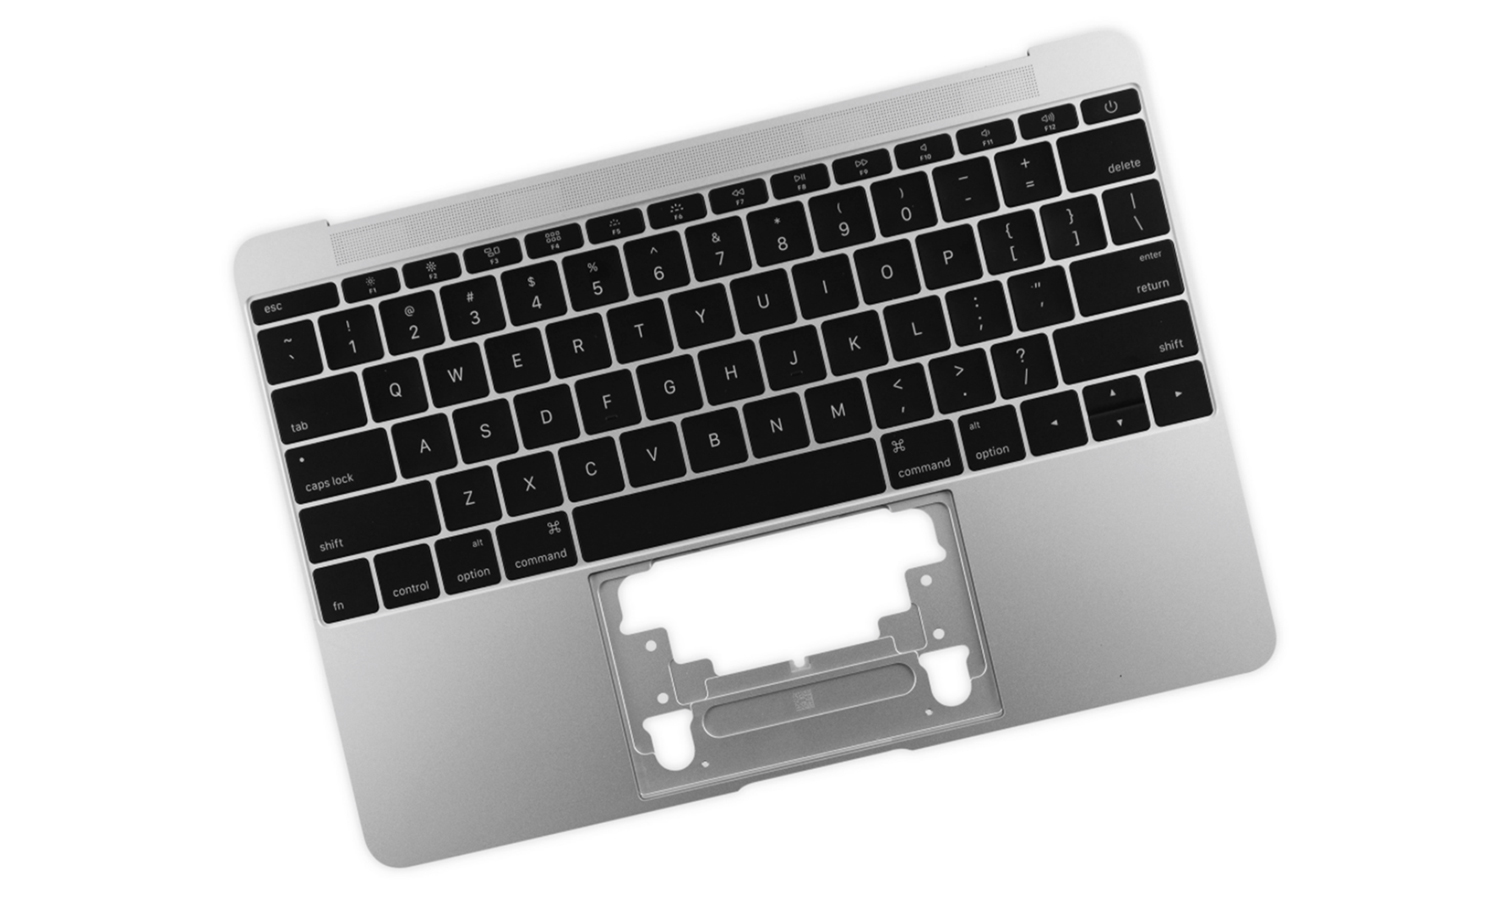 LaptopDoctor – Apple repair specialist based in Singapore since 1997. MacBook keyboard repair services.